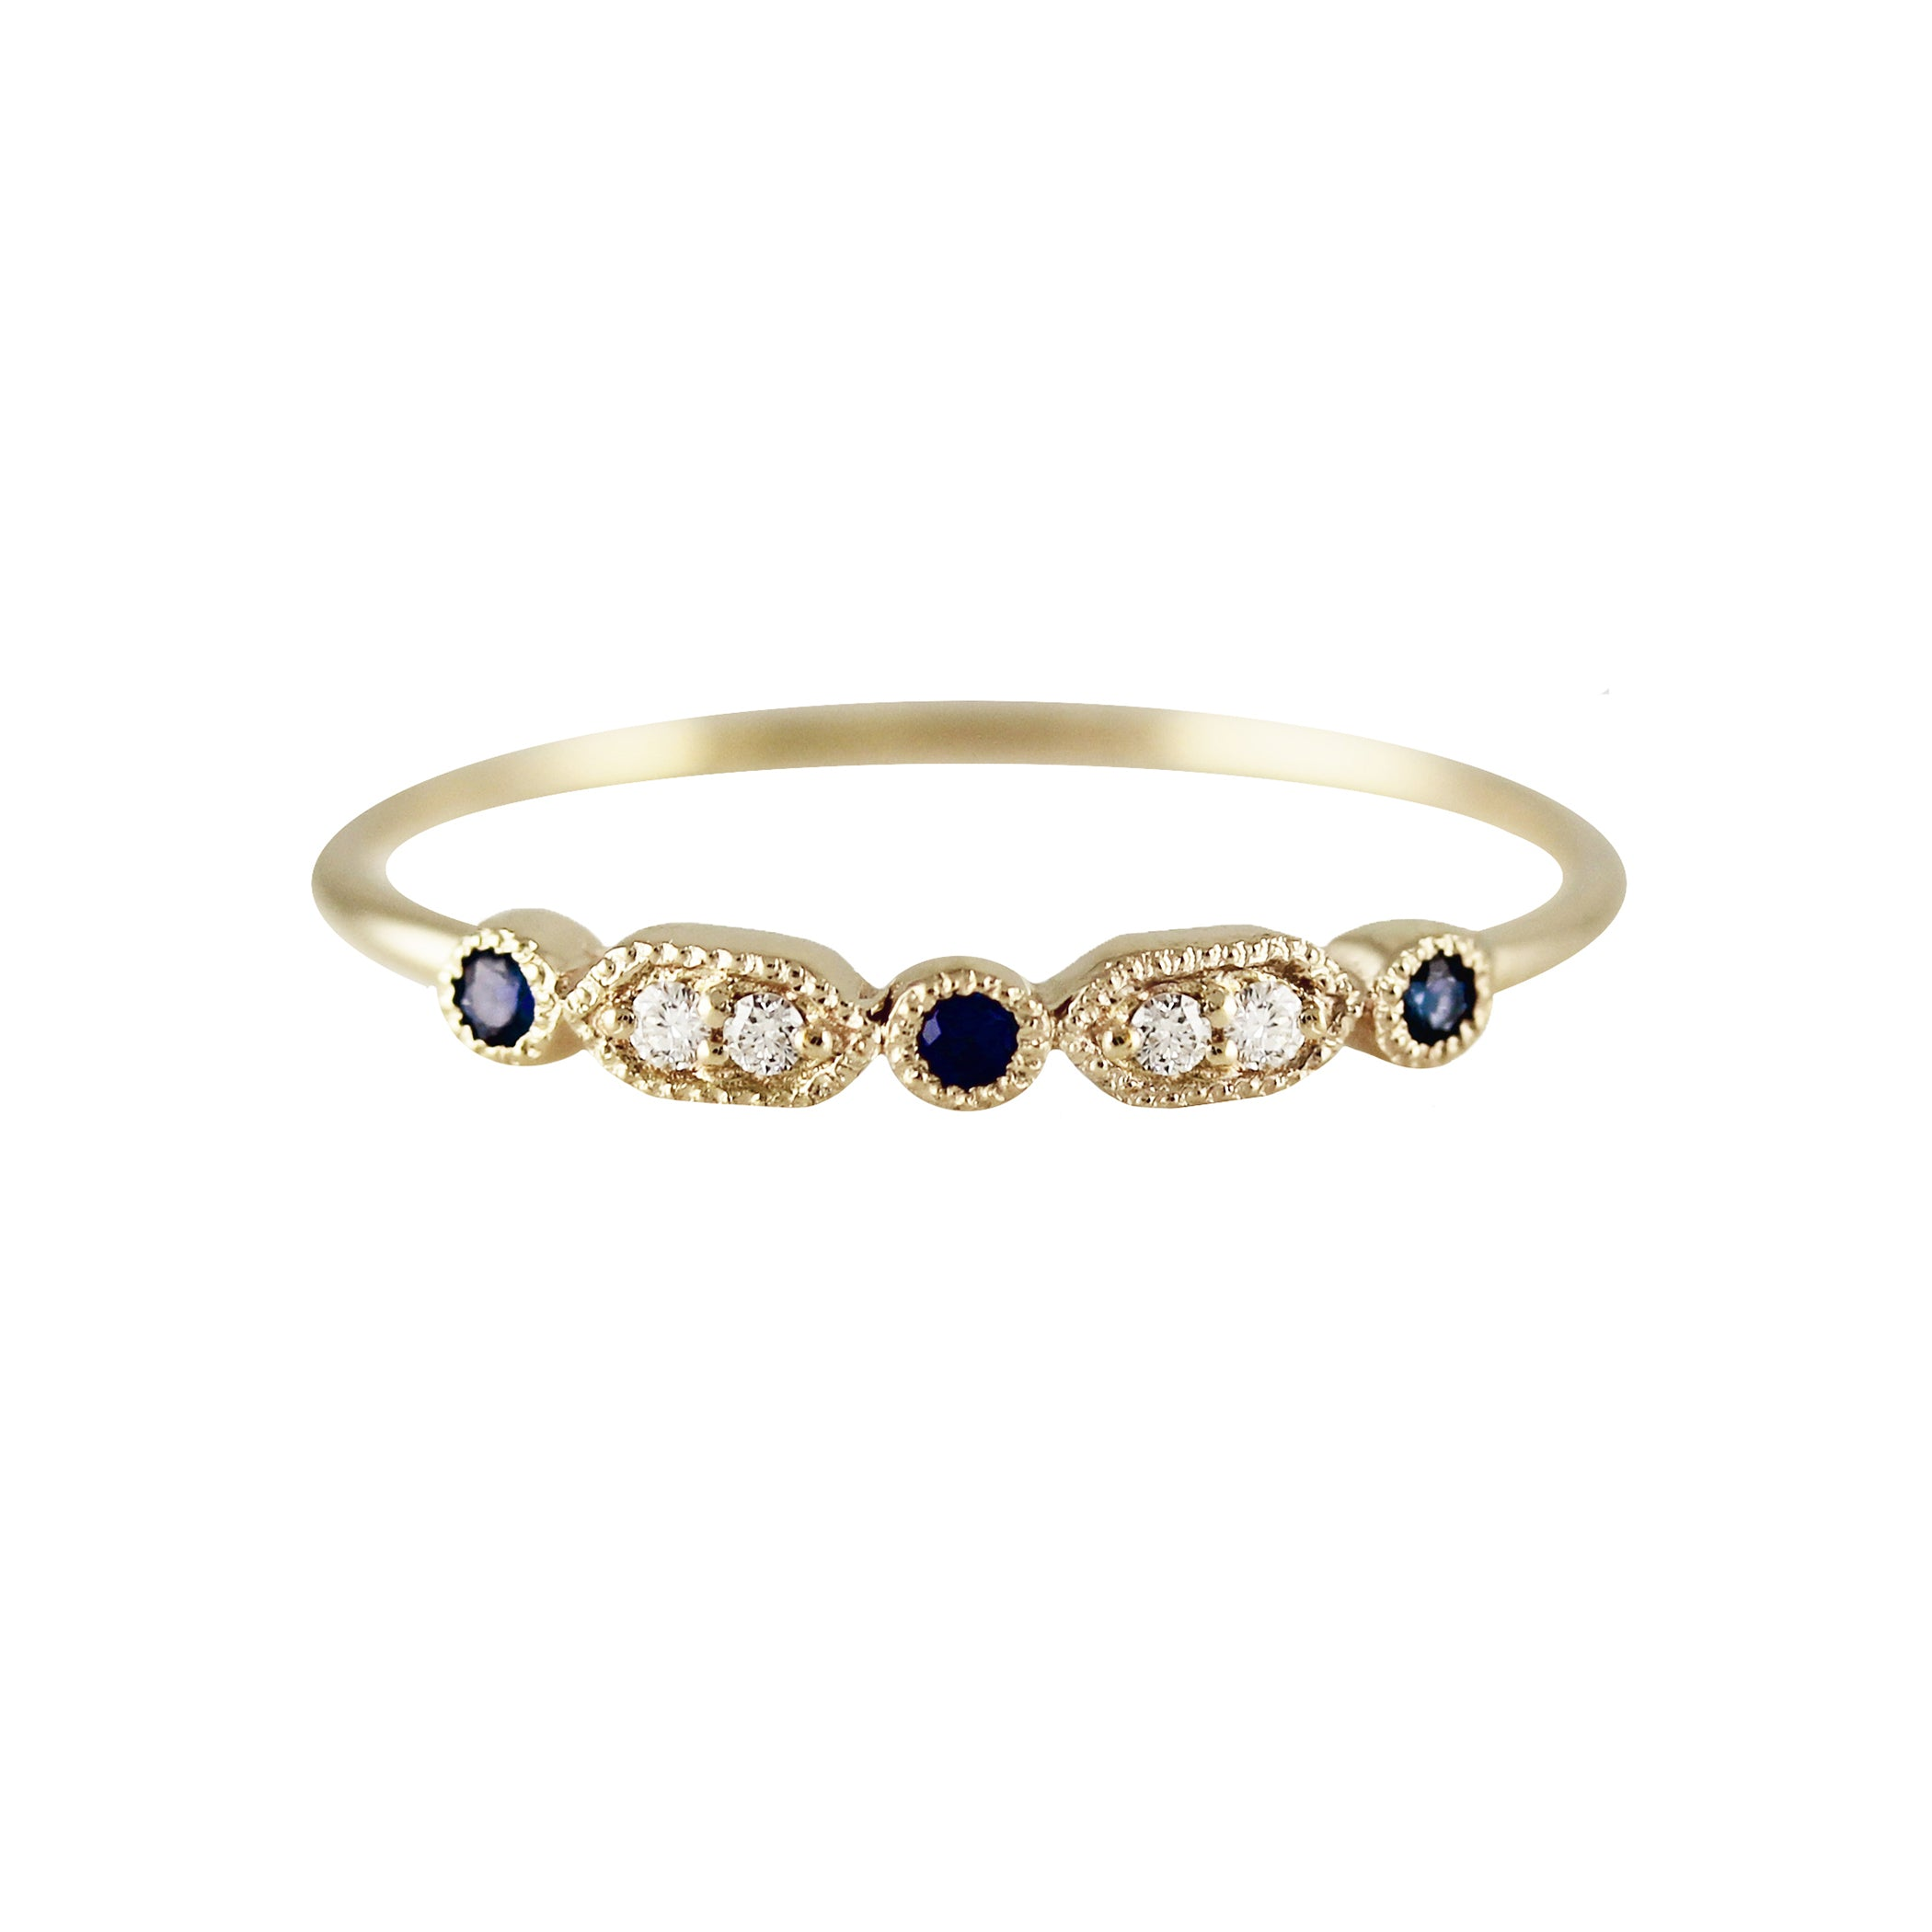 MINI DECO DIAMOND AND SAPPHIRE RING